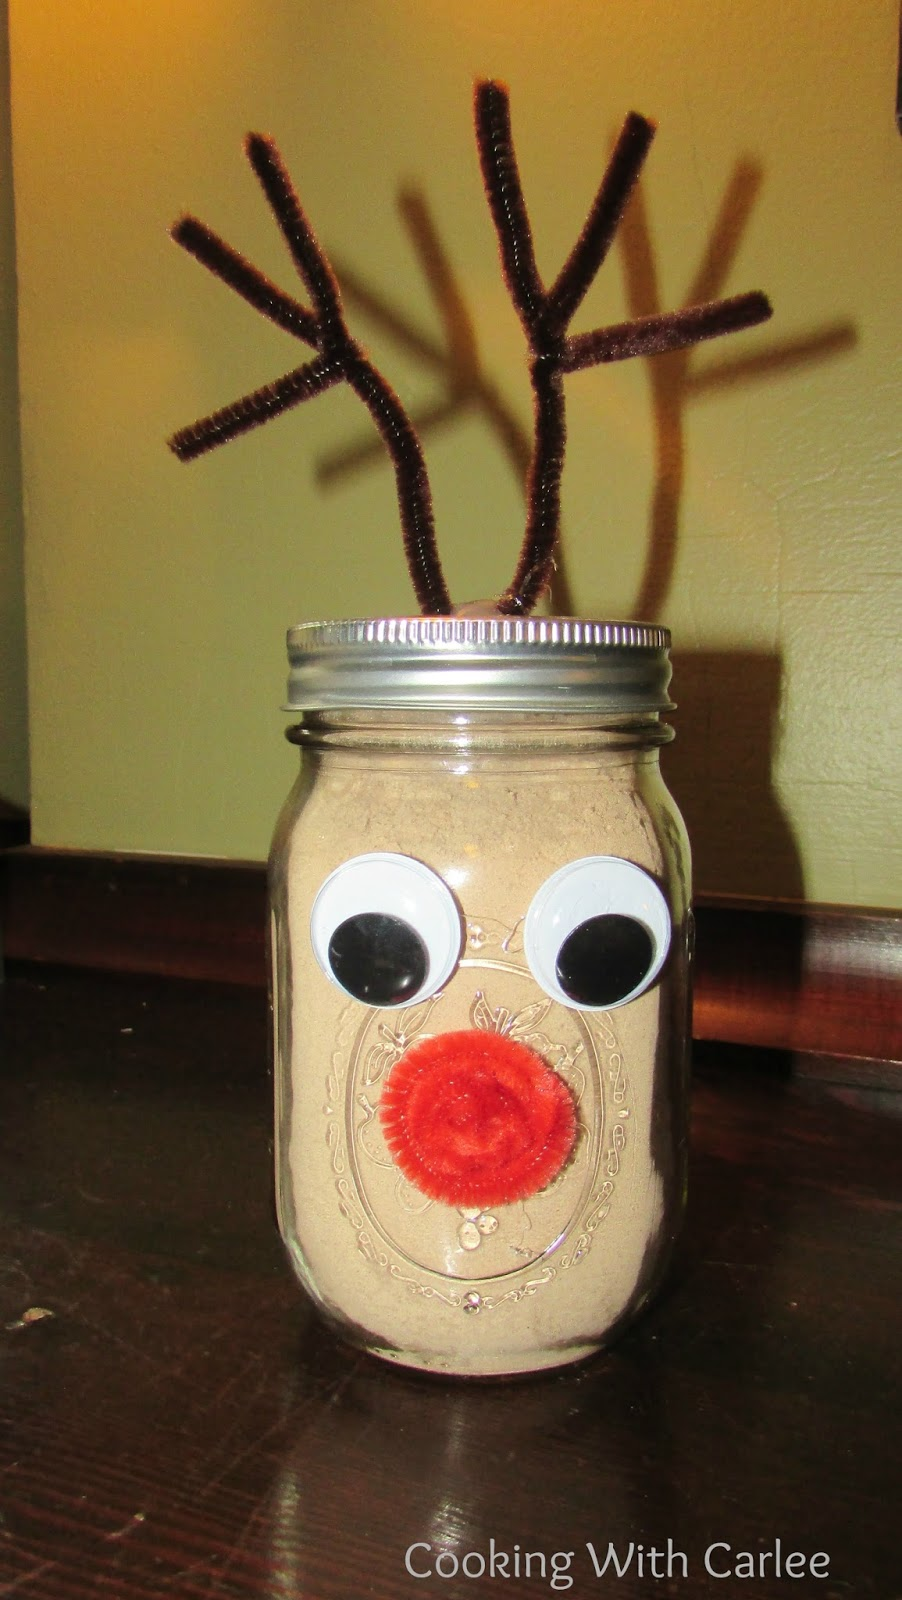 Jar of hot chocolate mix decorated to look like rudolph the red nosed reindeer.